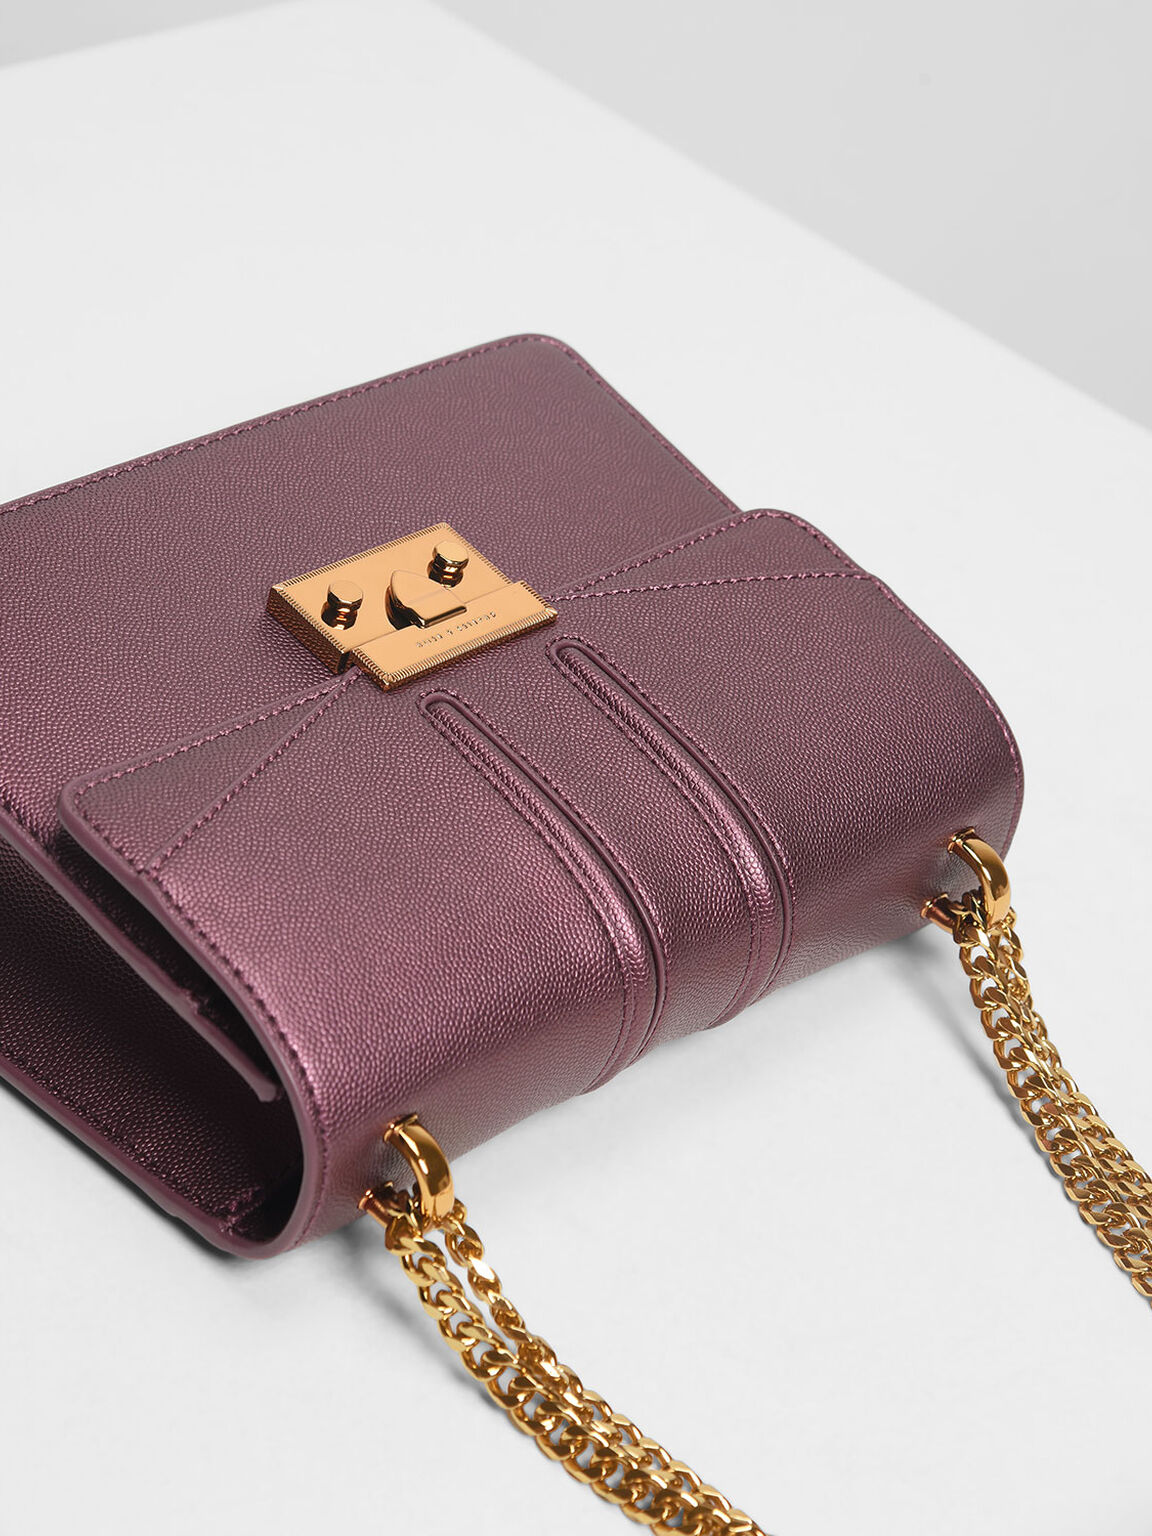 Push Lock Front Flap Bag, Prune, hi-res